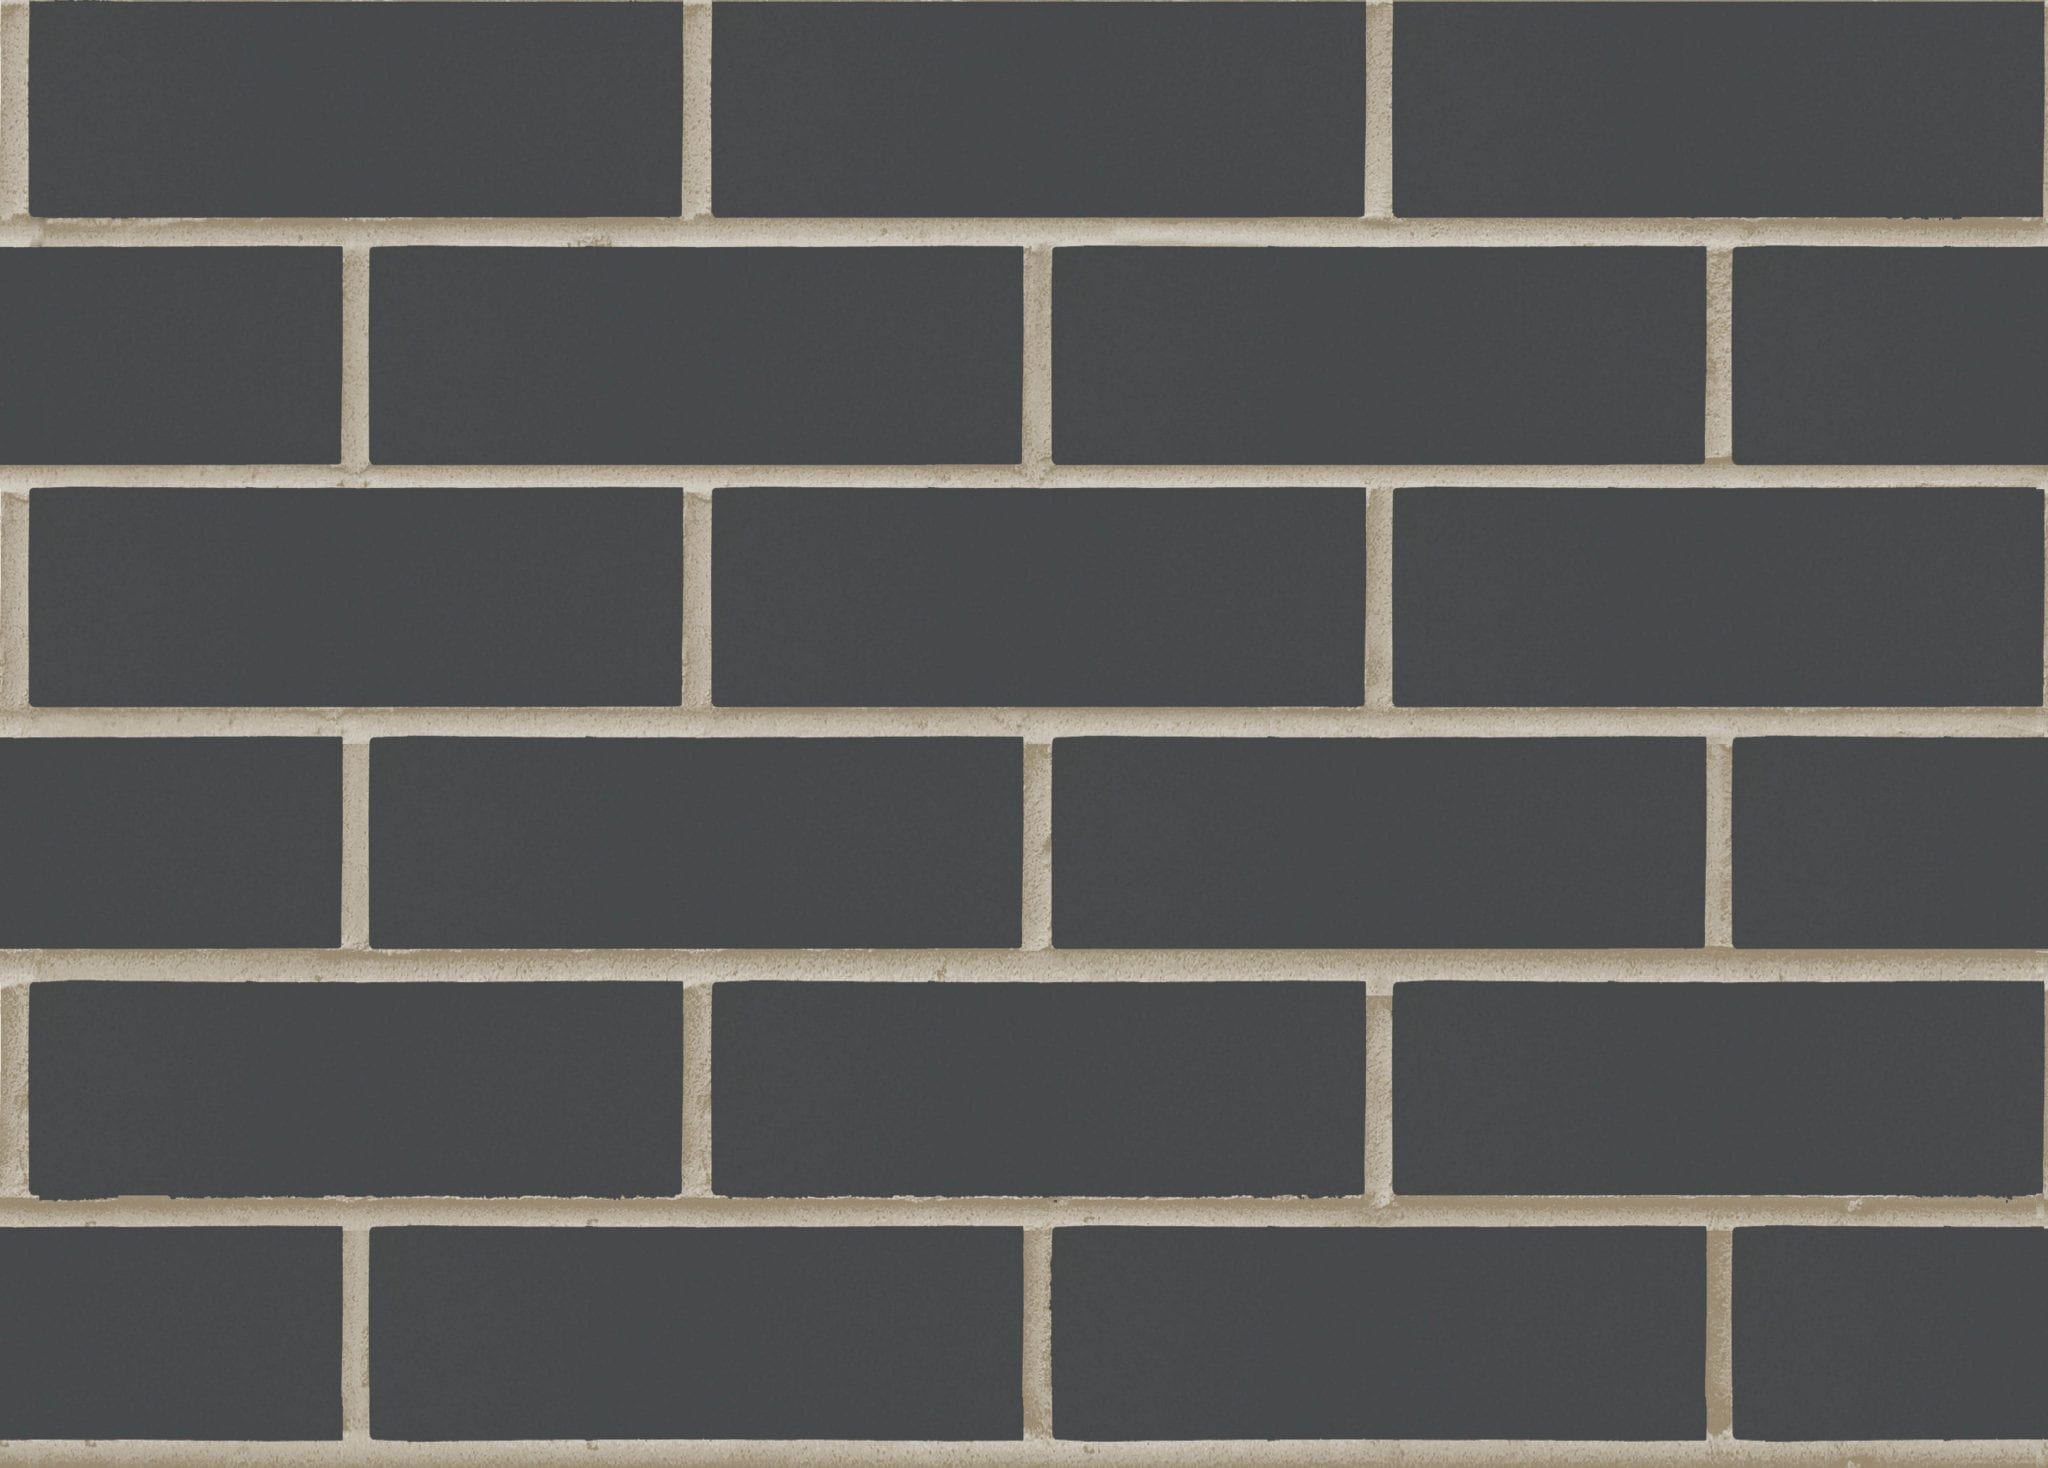 UltraSmoothJazz230x76-110-240 - NSW Bricks